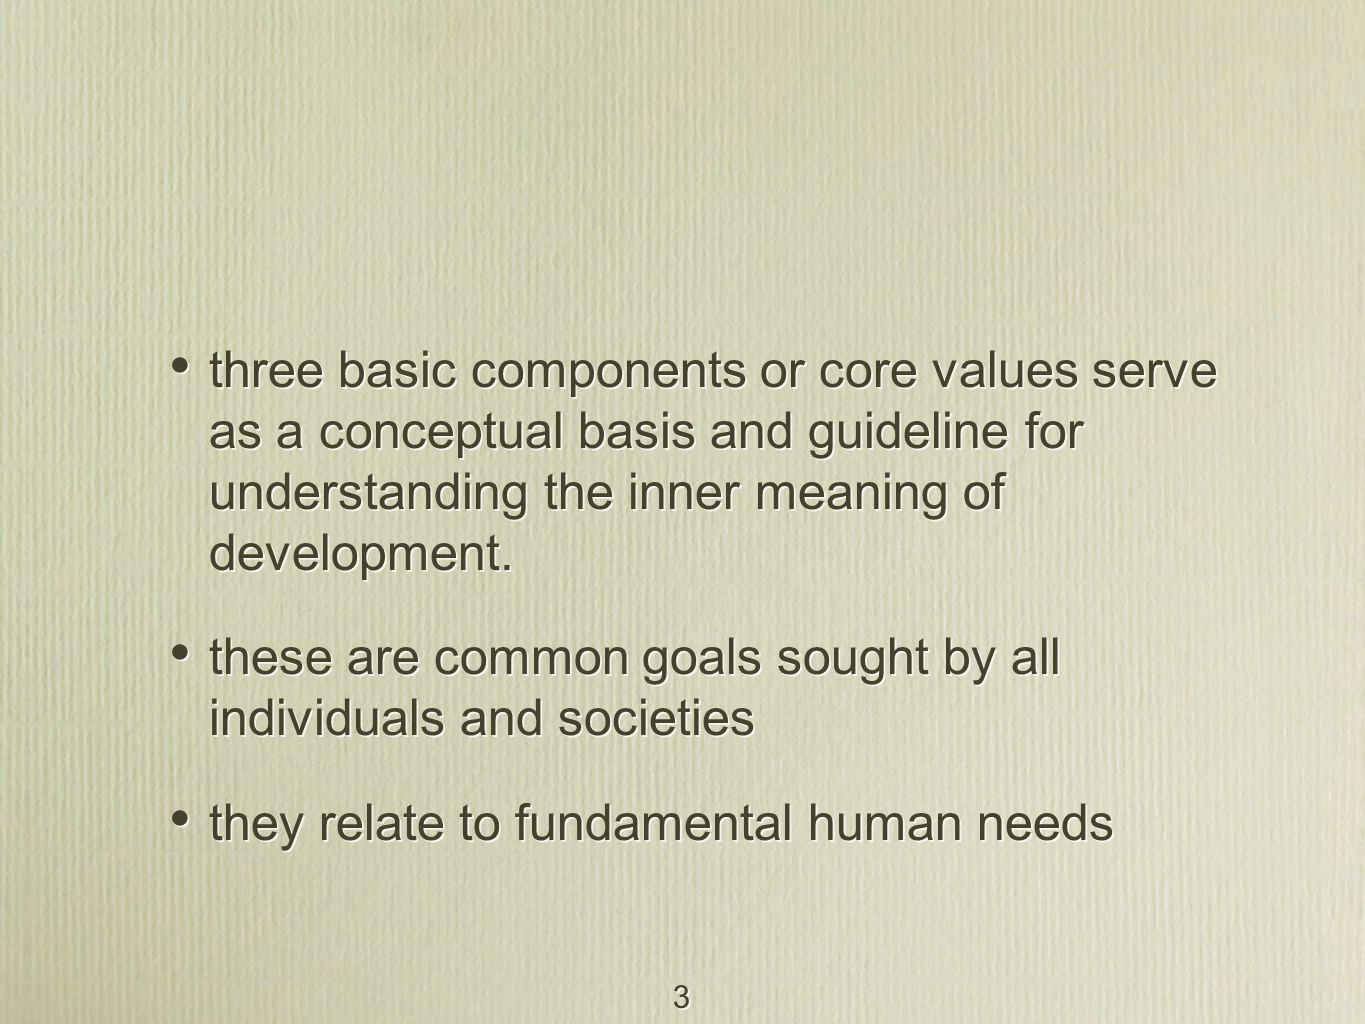 3 three basic components or core values serve as a conceptual basis and guideline for understanding the inner meaning of development. these are common